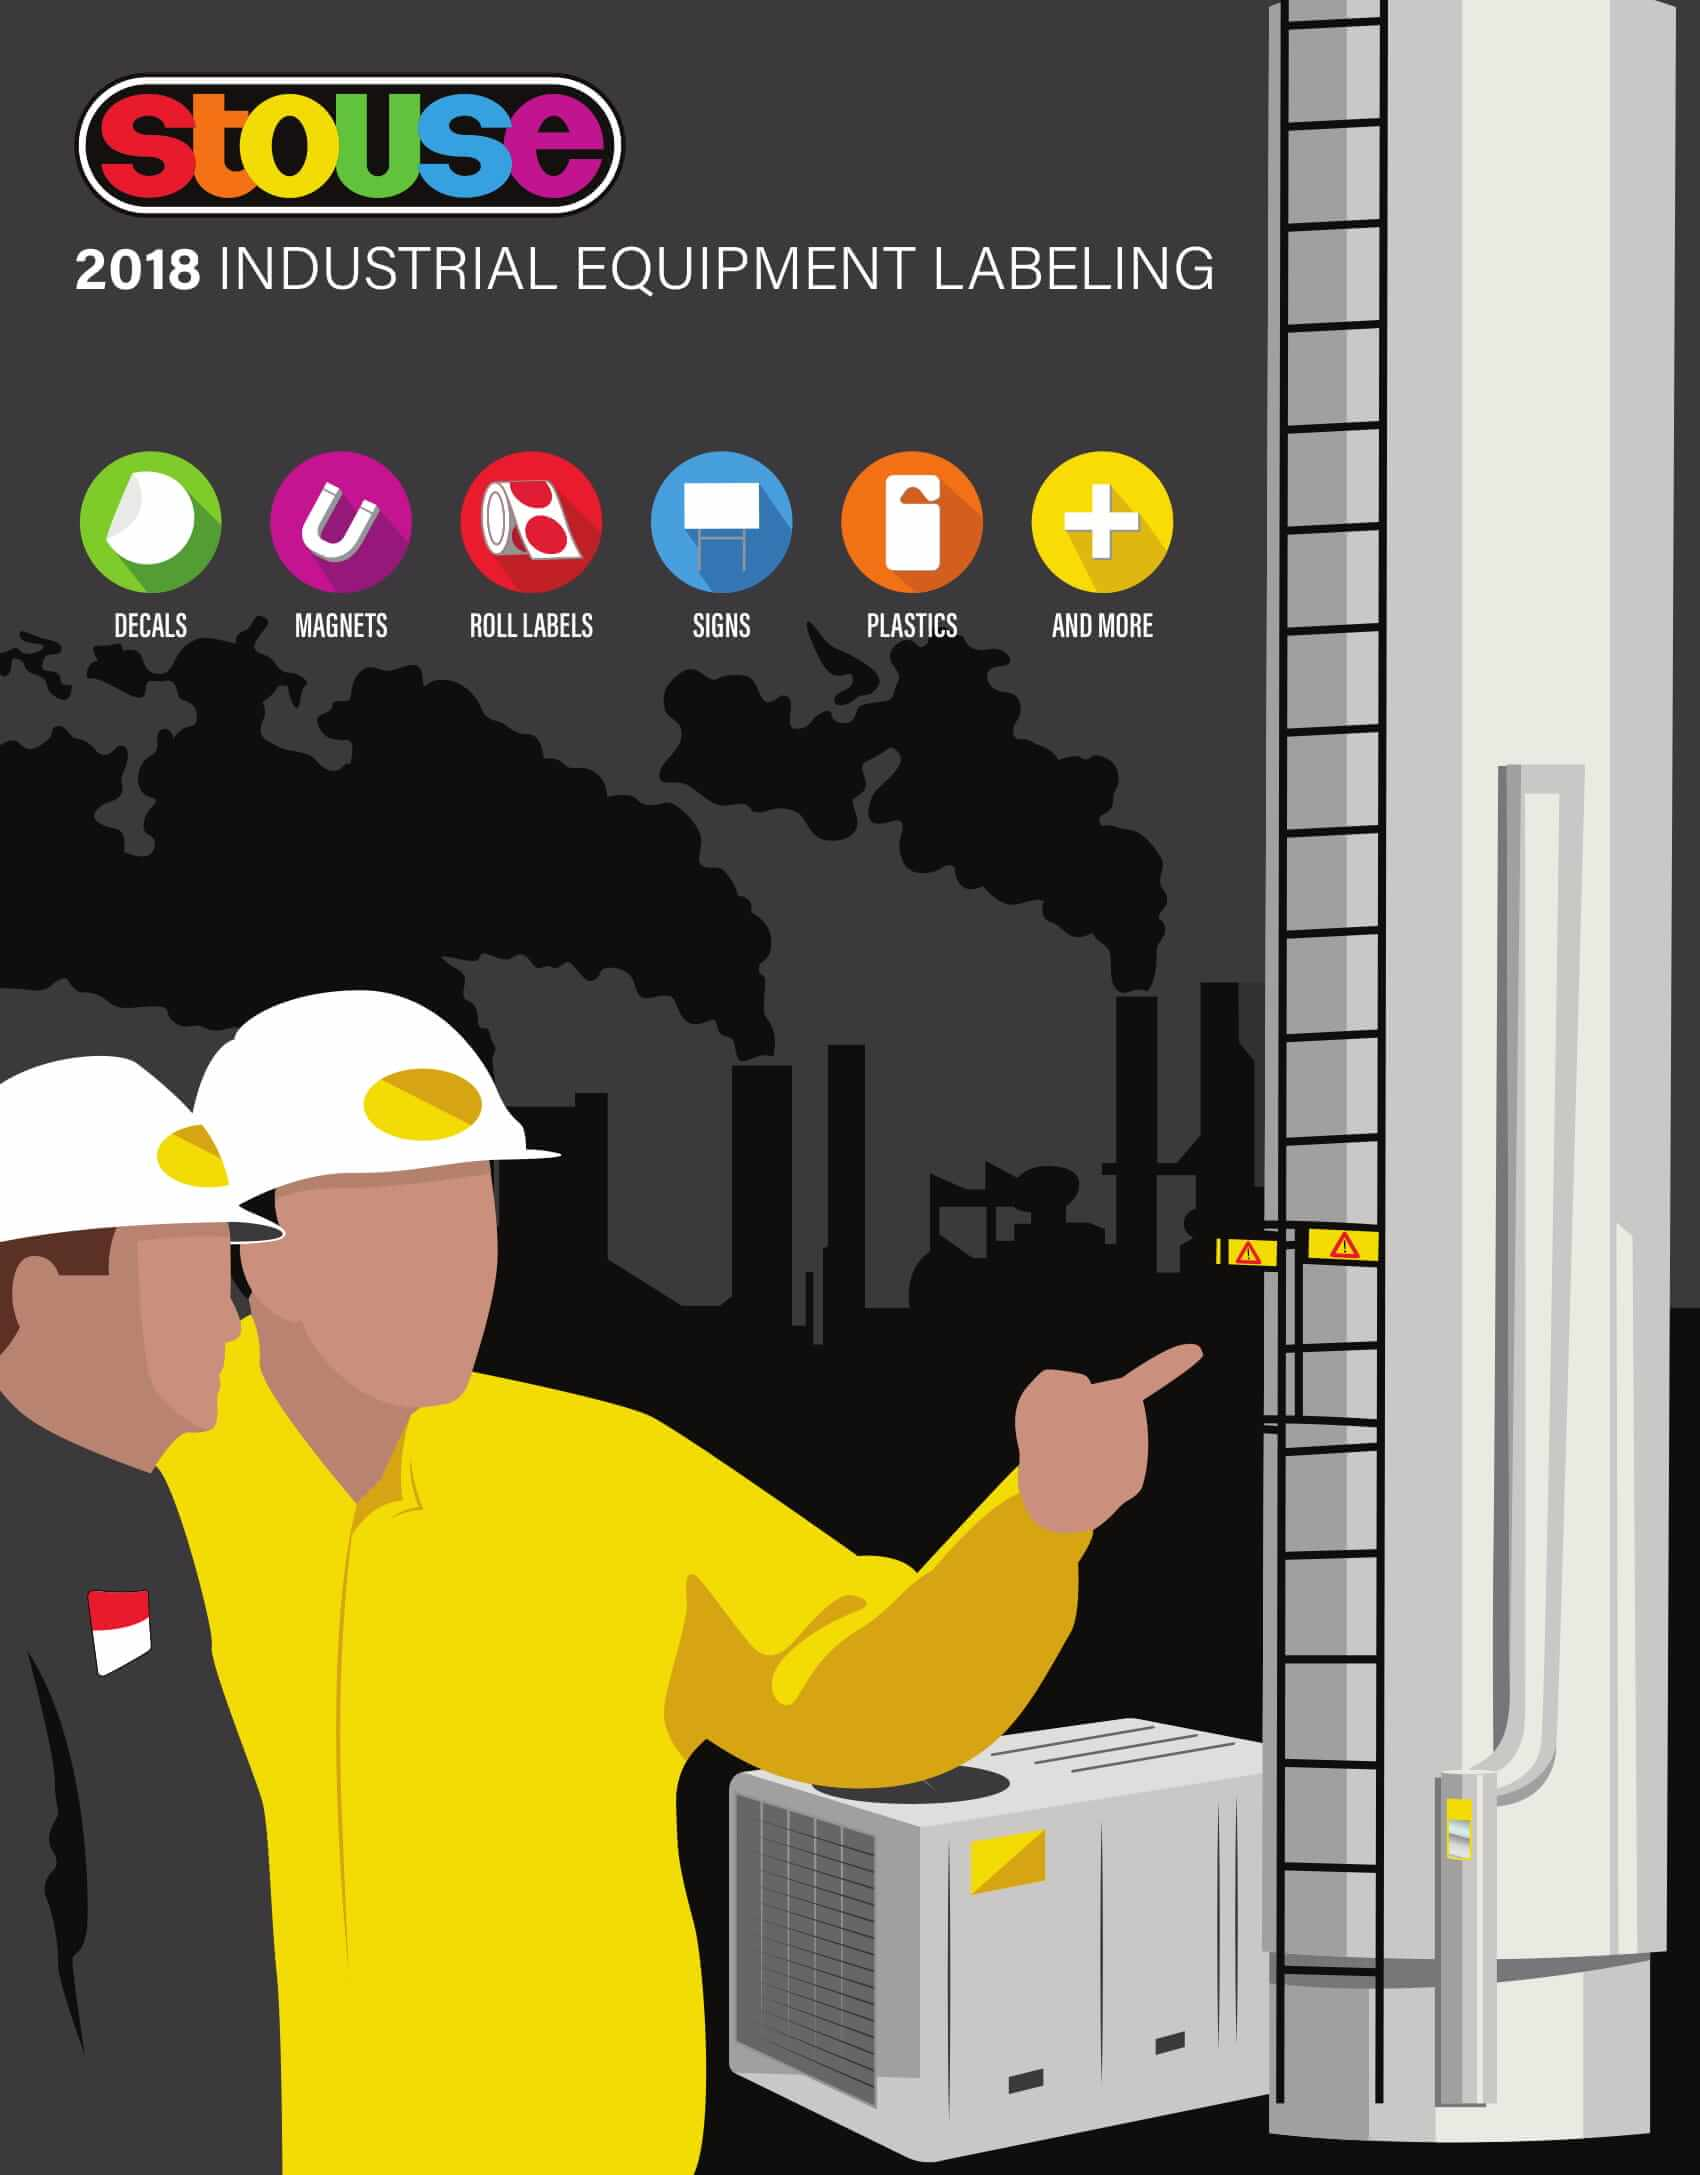 2018 Industrial Equipment Labeling